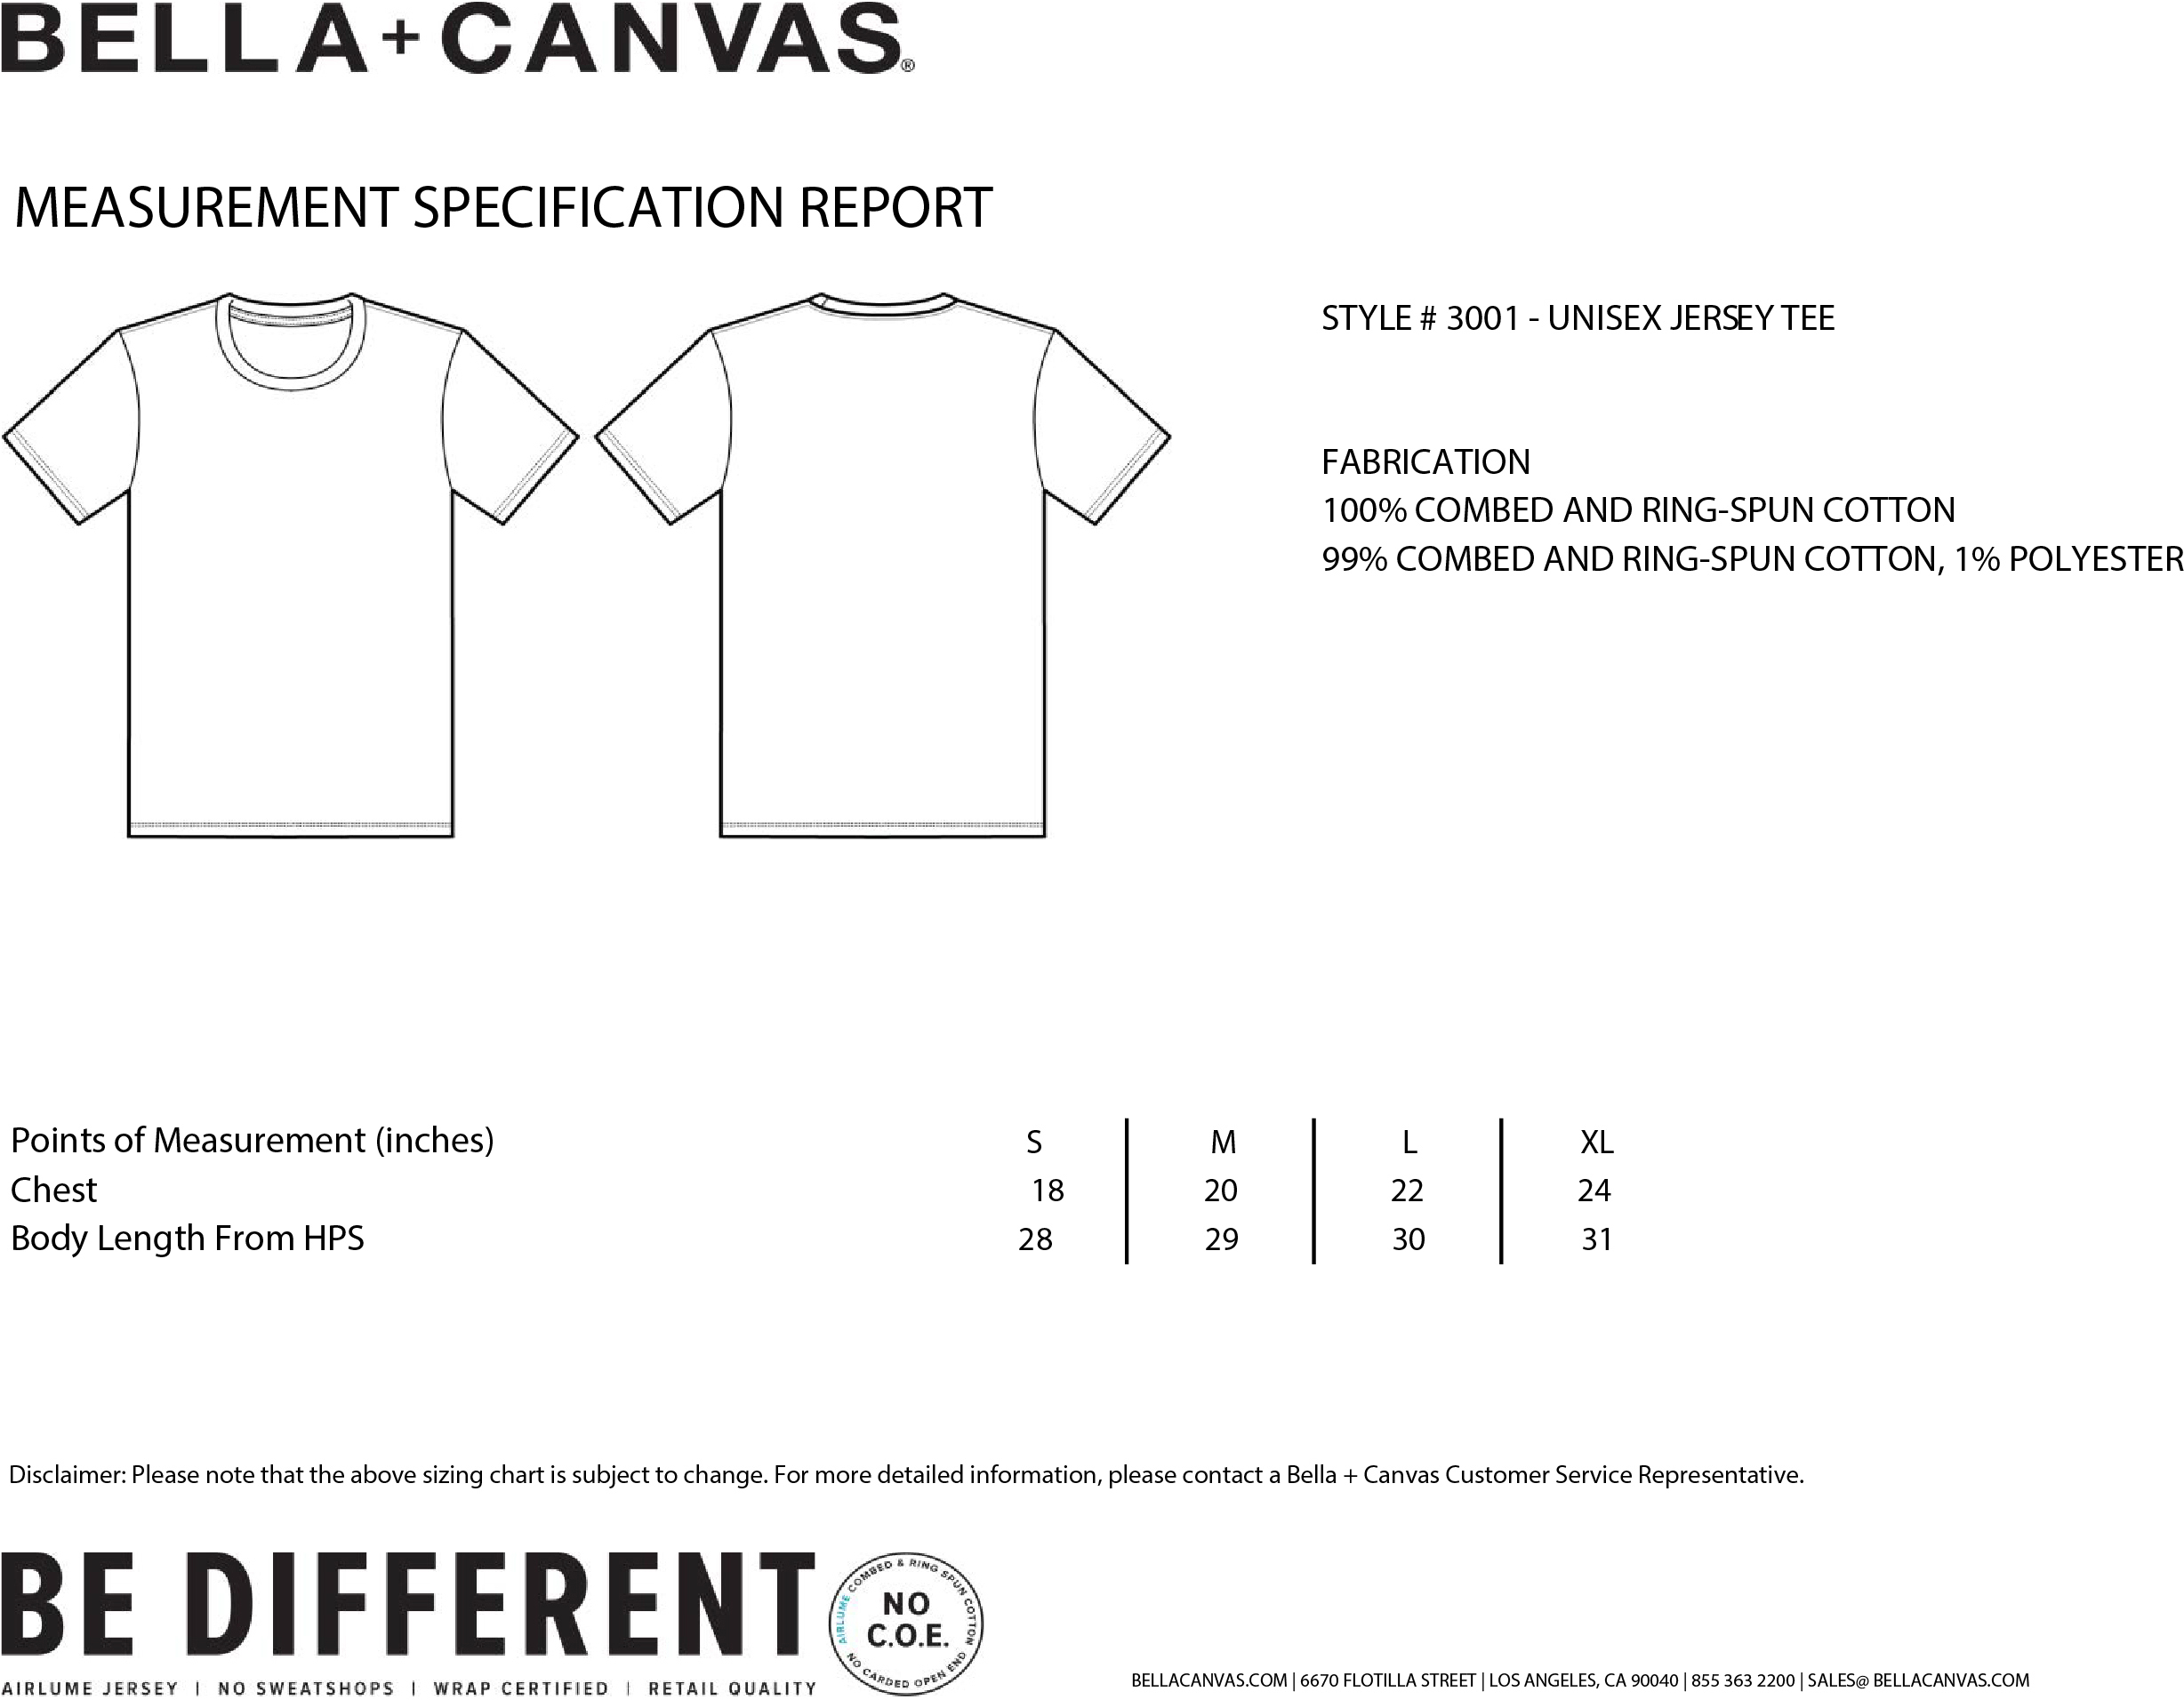 Bella Canvas t-shirt sizing guide